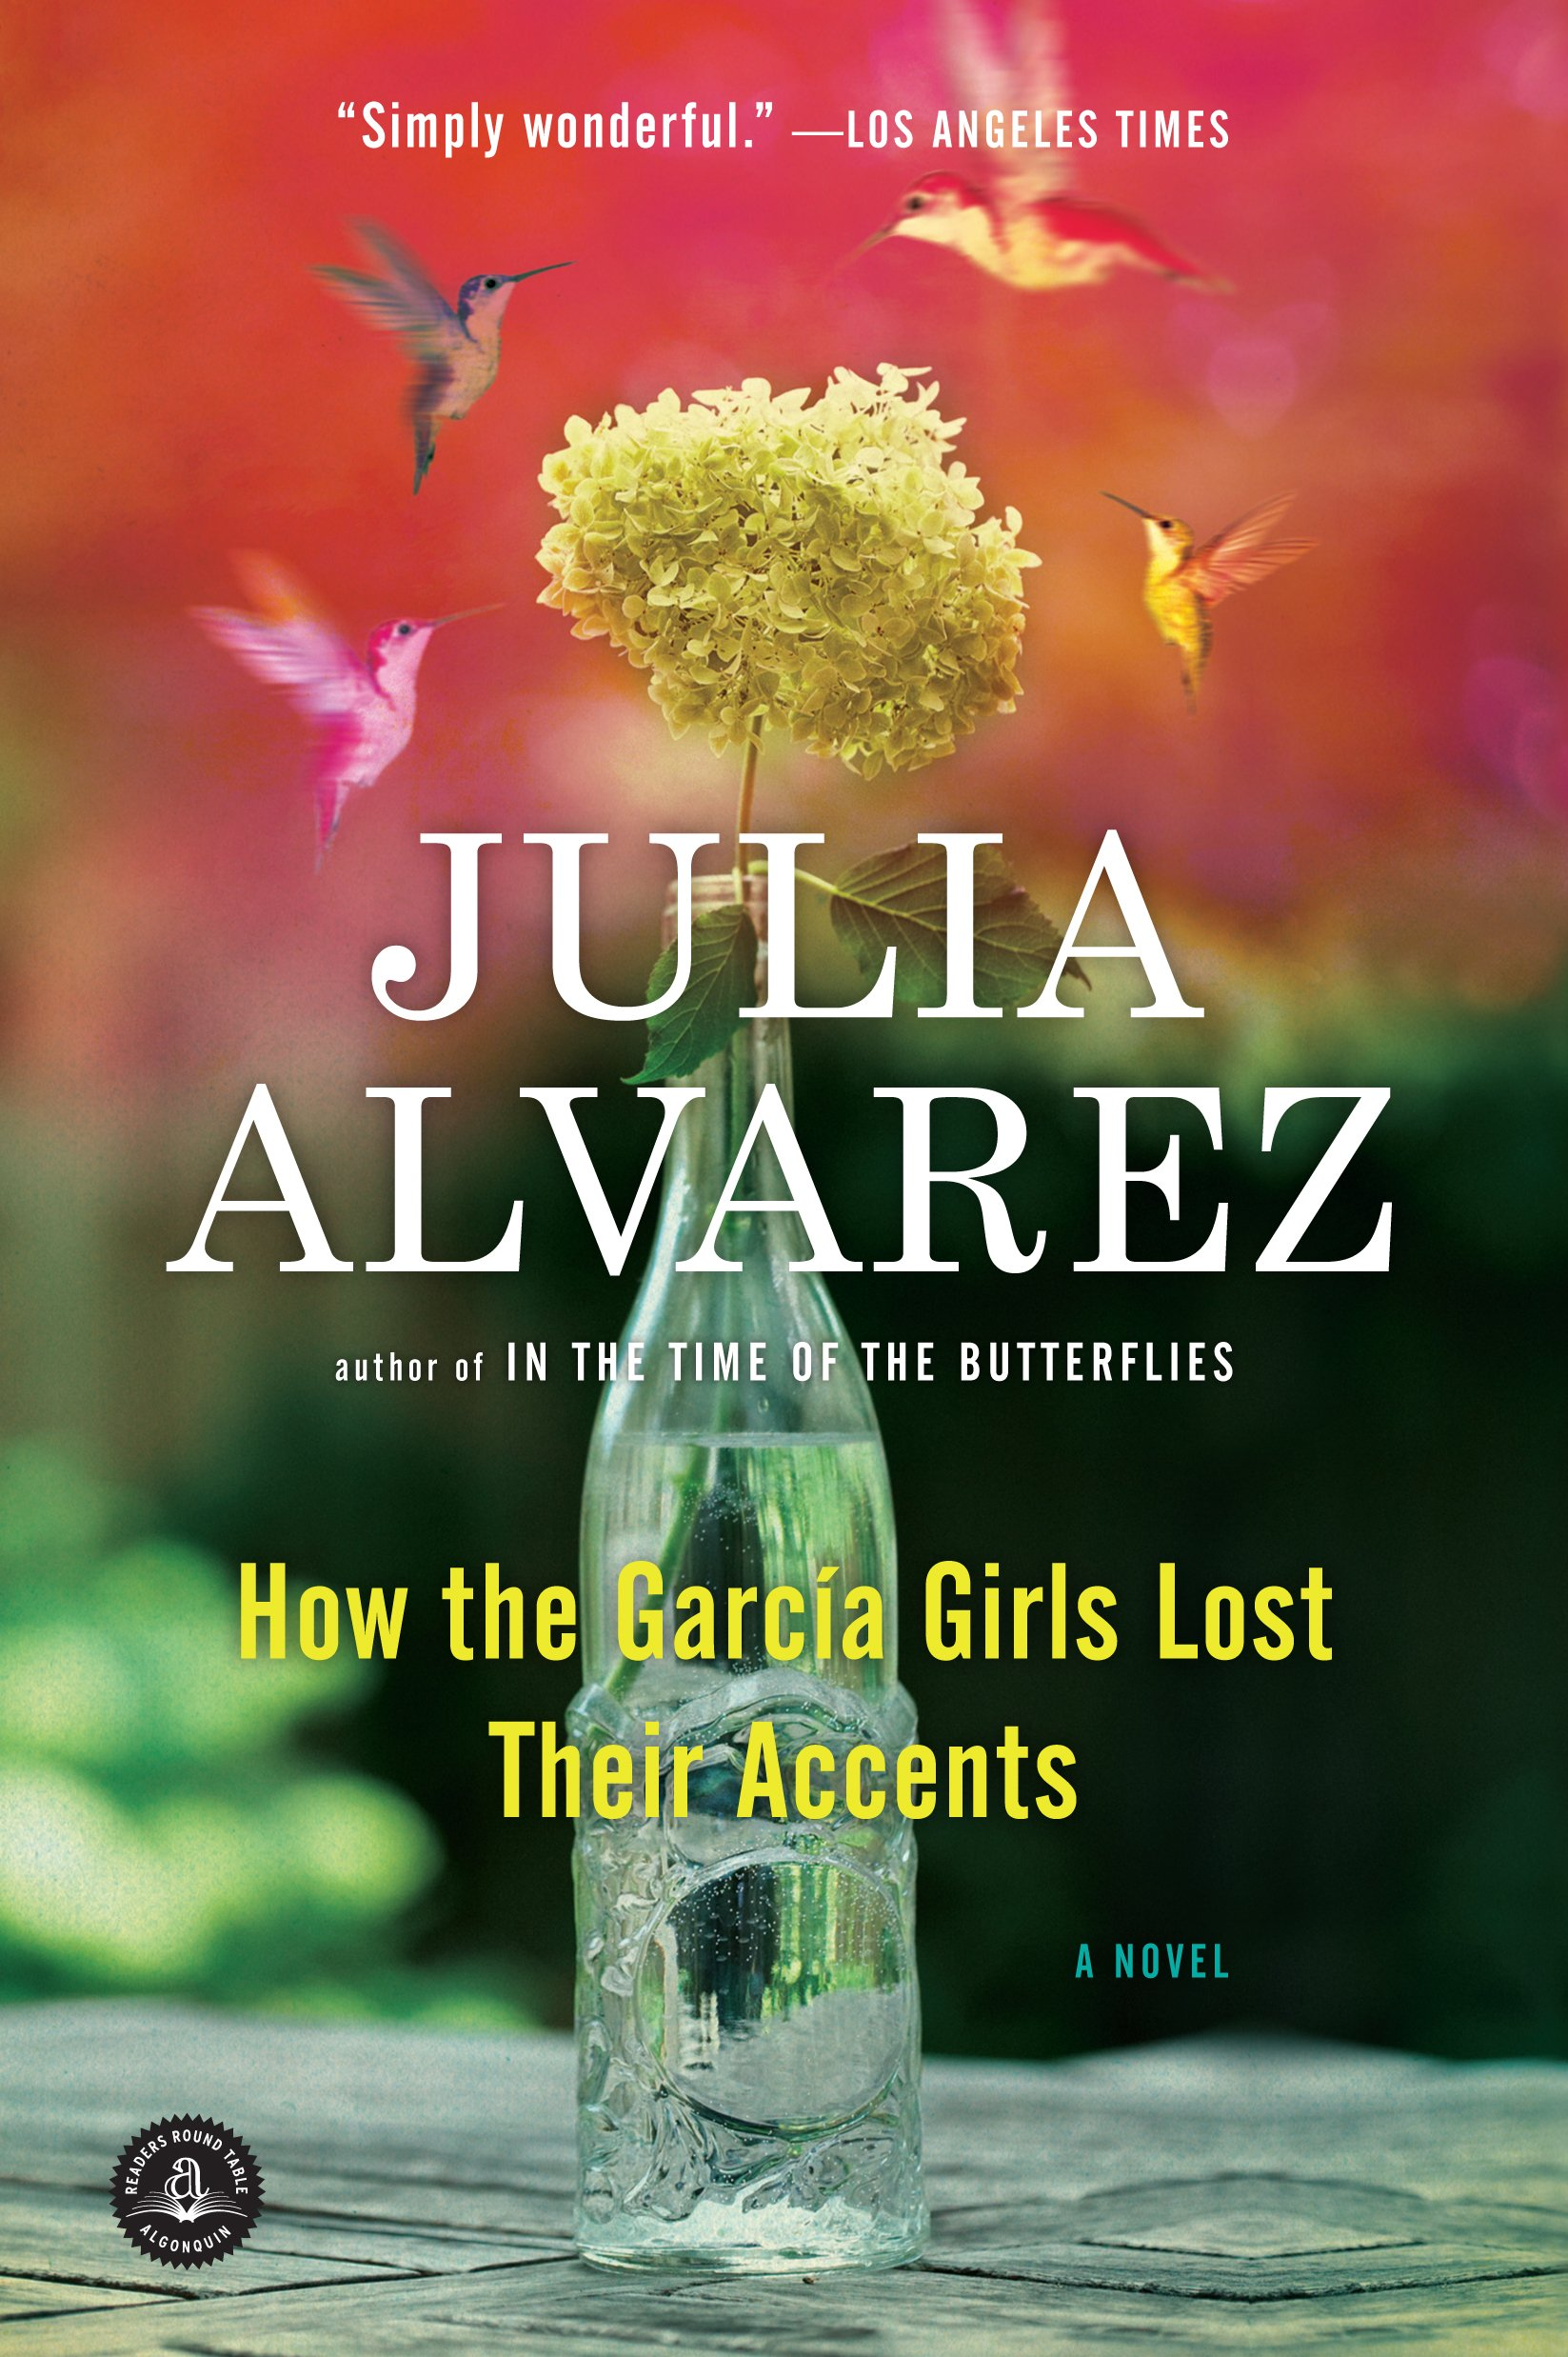 How the garcia girls lost their accents Nude Photos 48